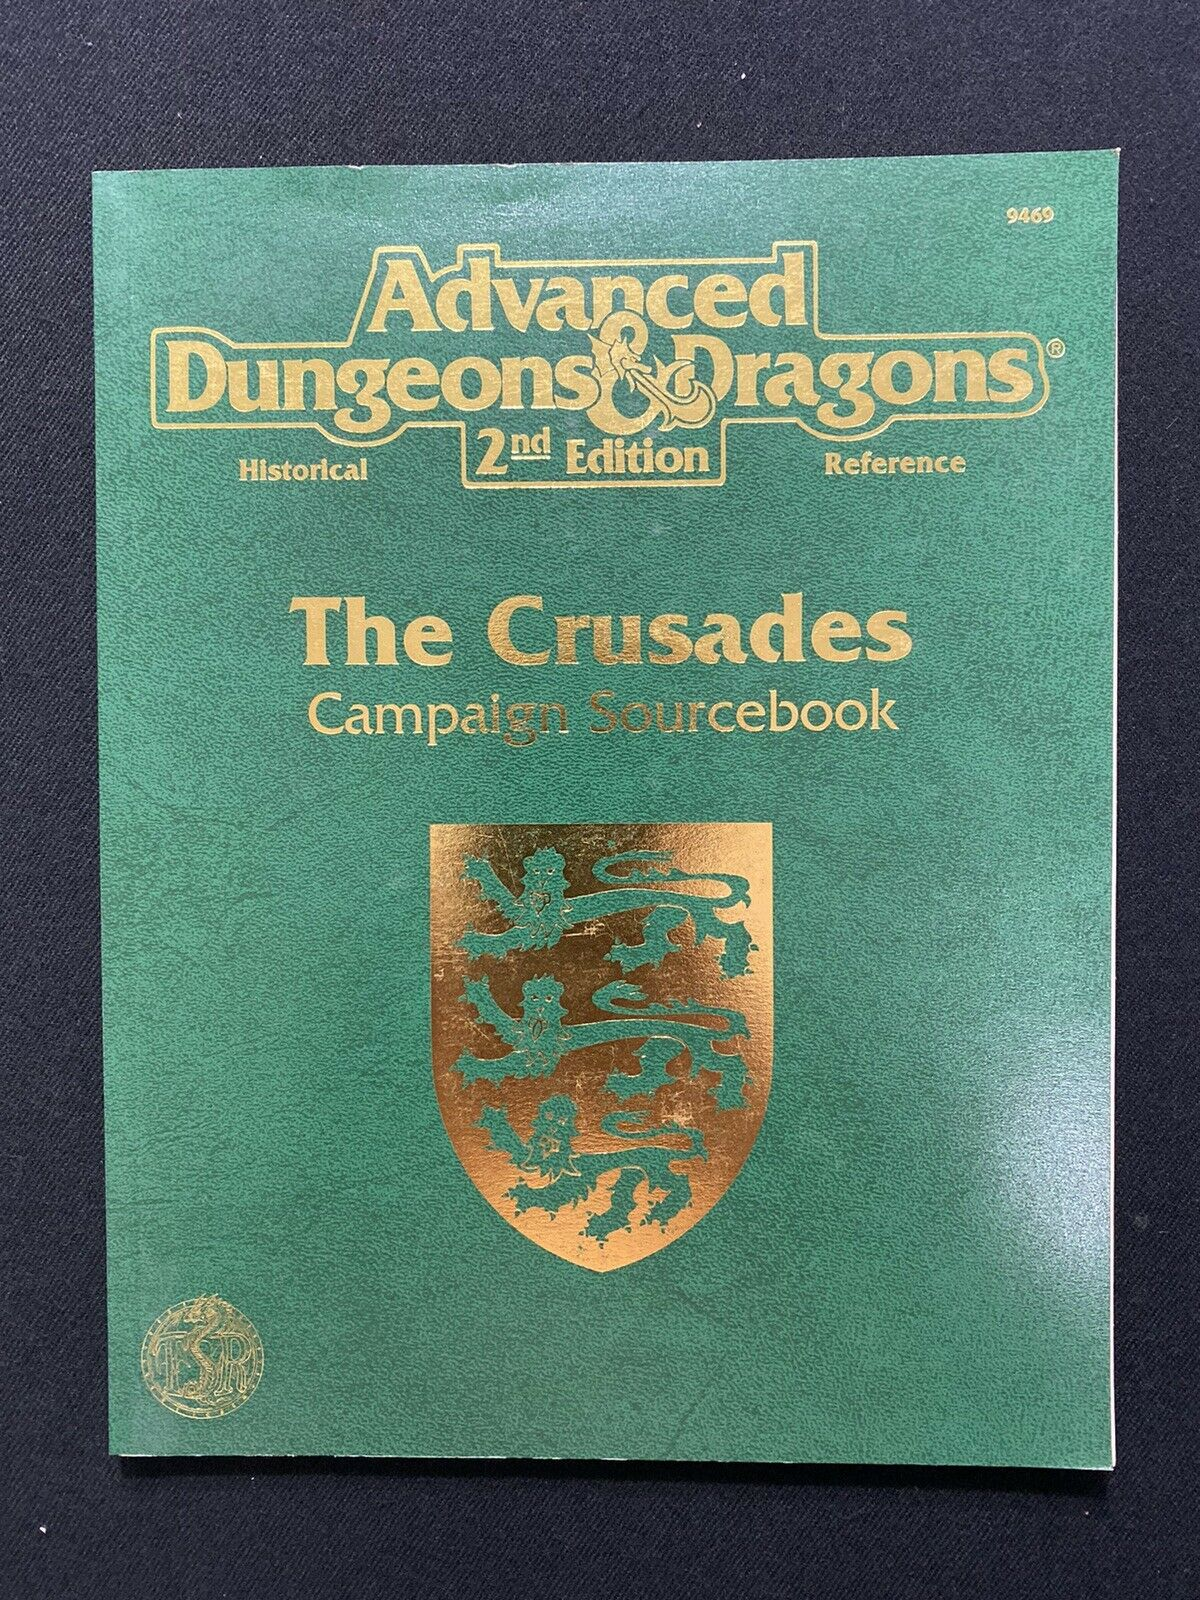 Advanced Dungeon & Dragons 2nd Edition The Crusades Campaign Sourcebook 9469